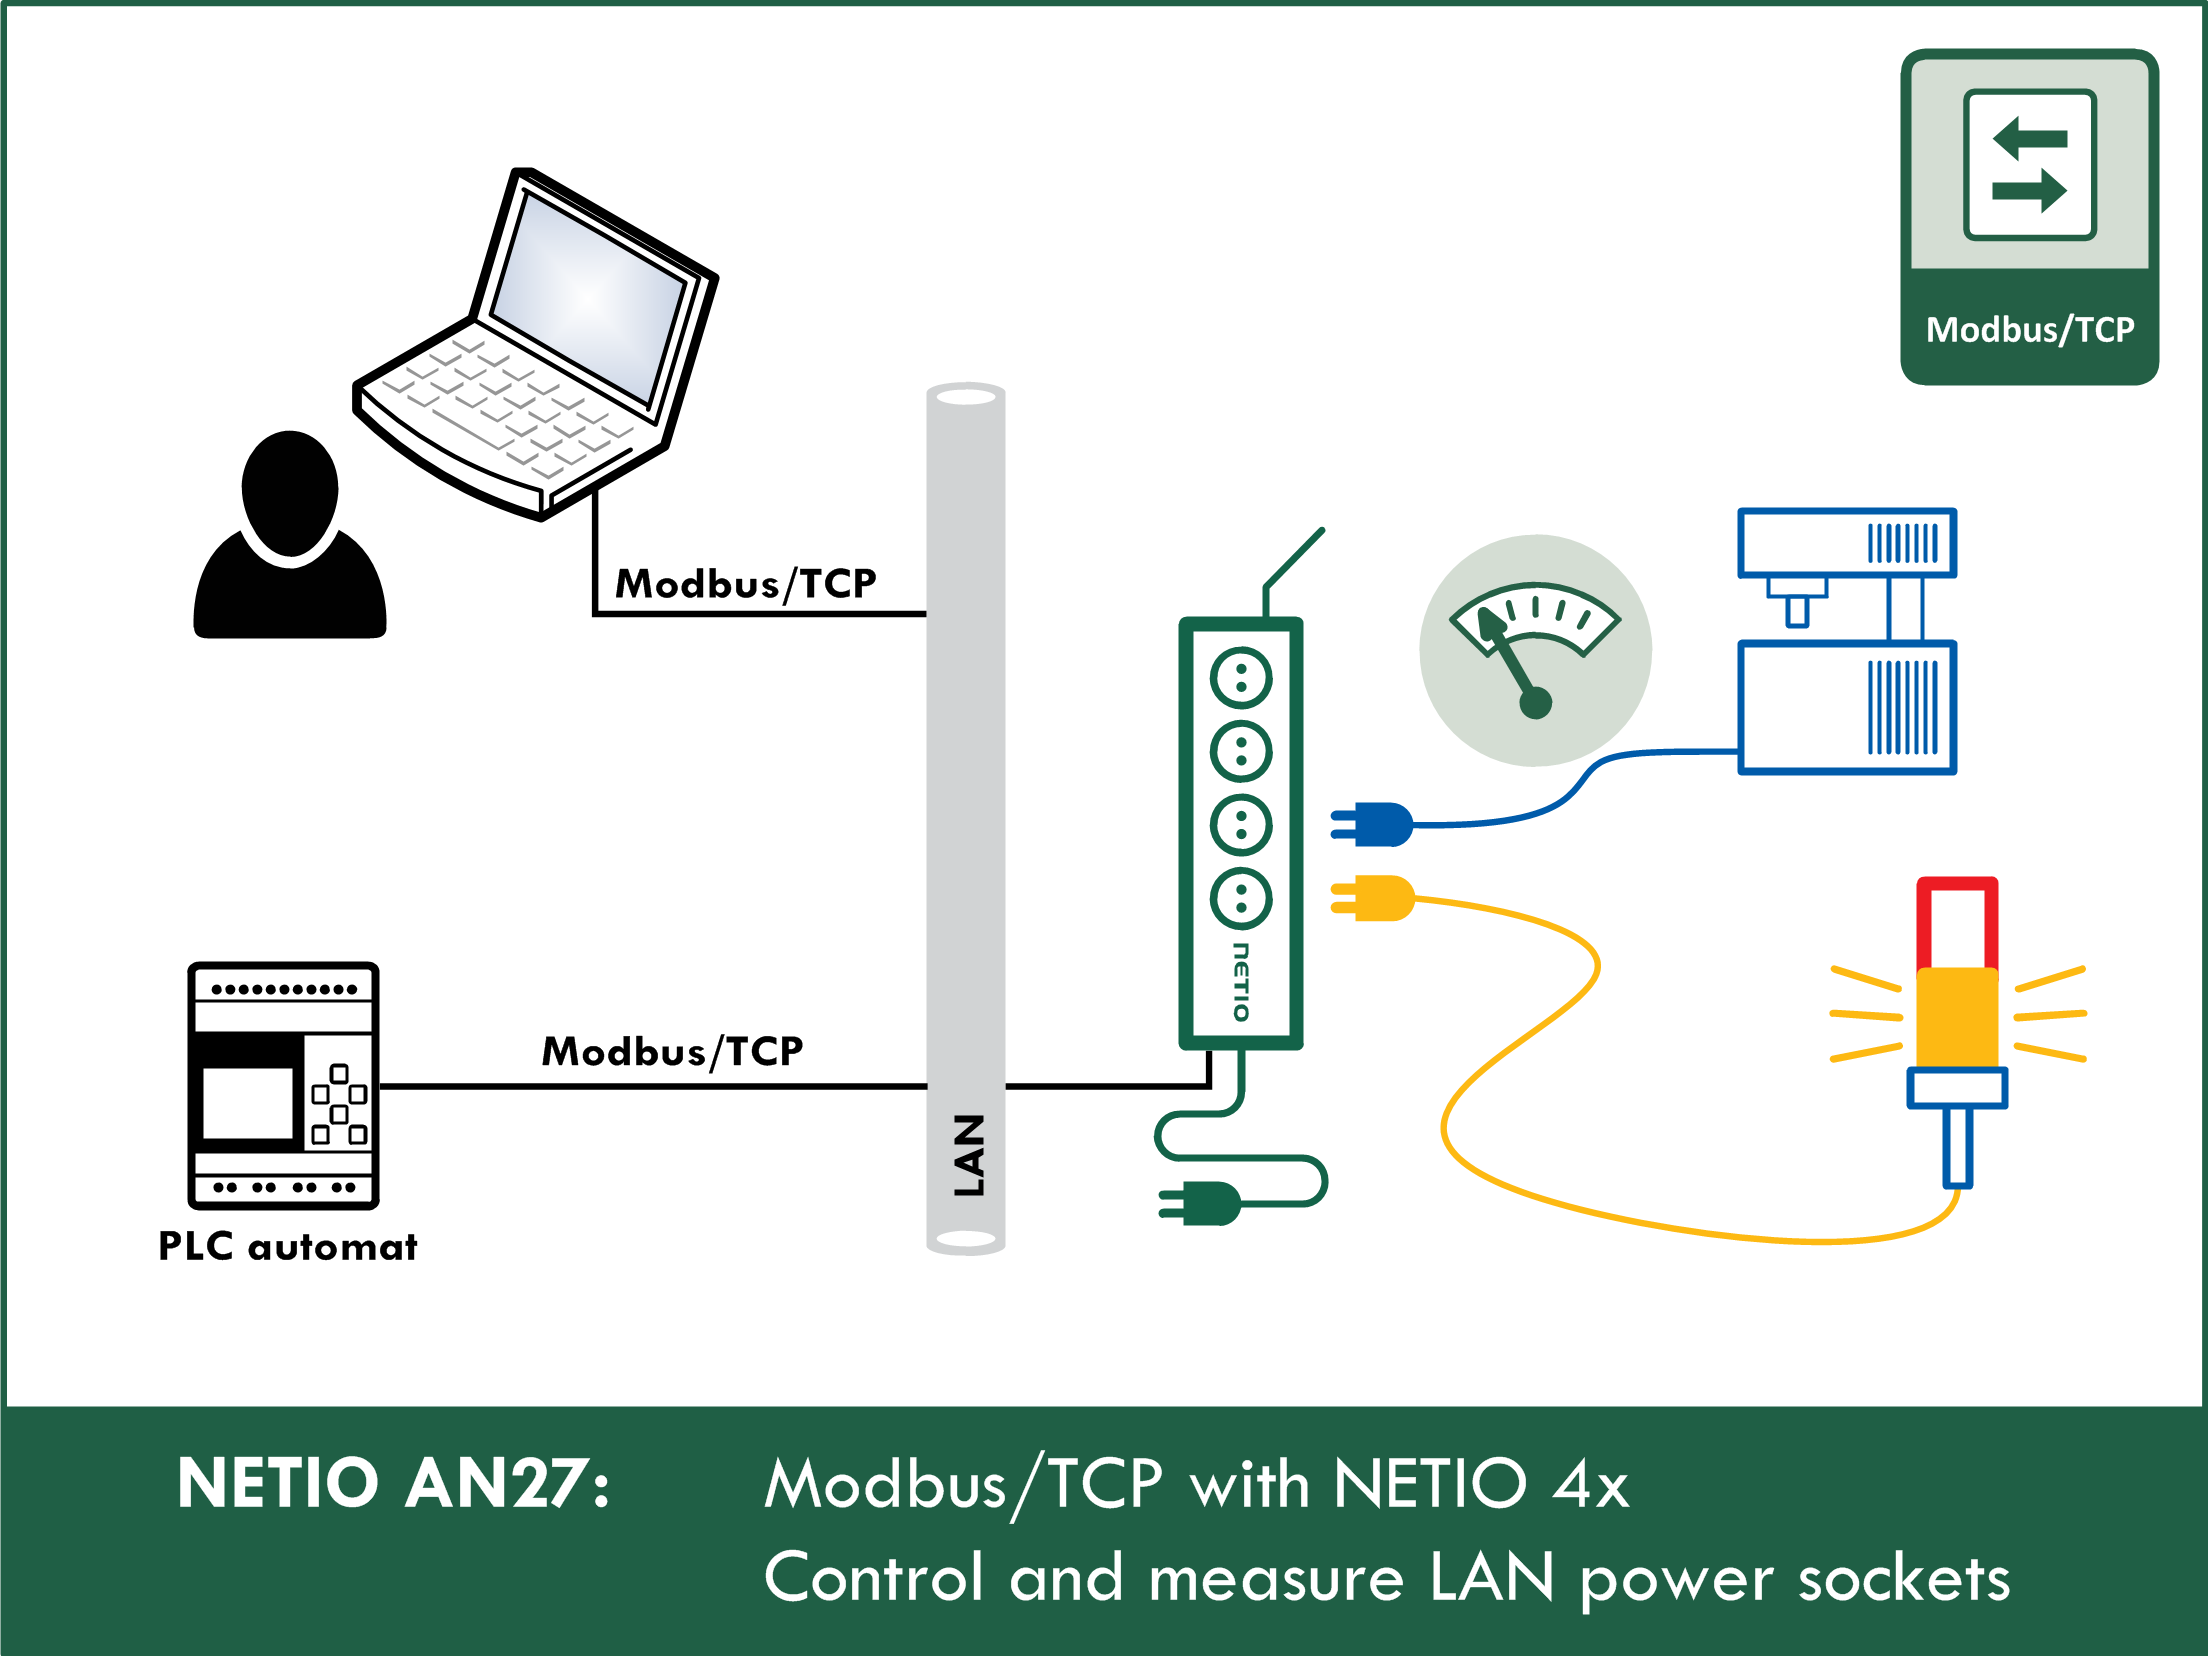 AN27 ModbusTCP with NETIO 4x – Control and measure LAN power sockets